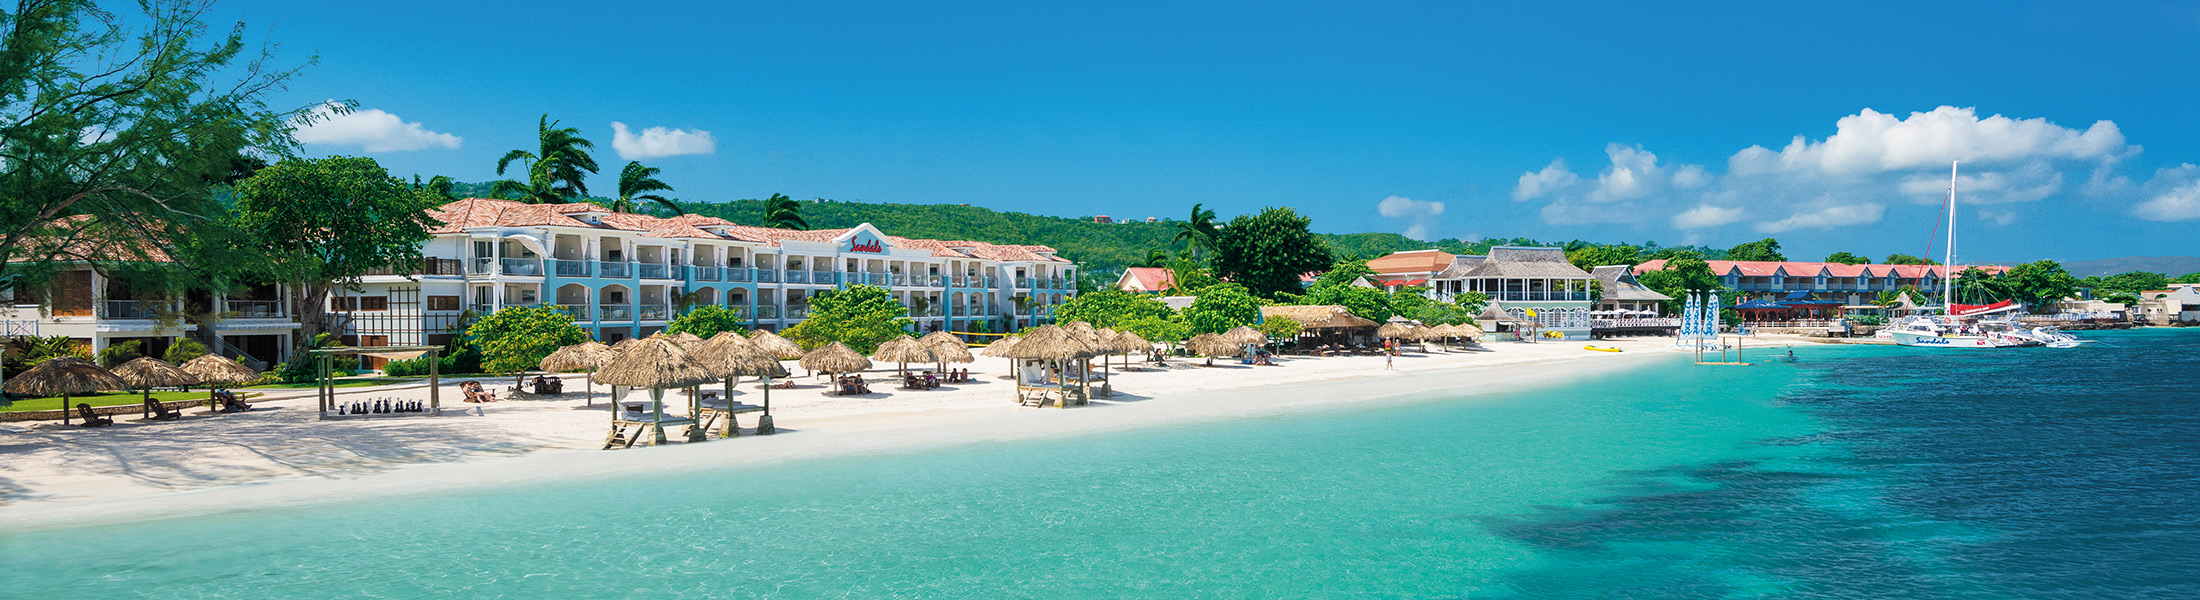 Aerial view of Sandals Montego Bay